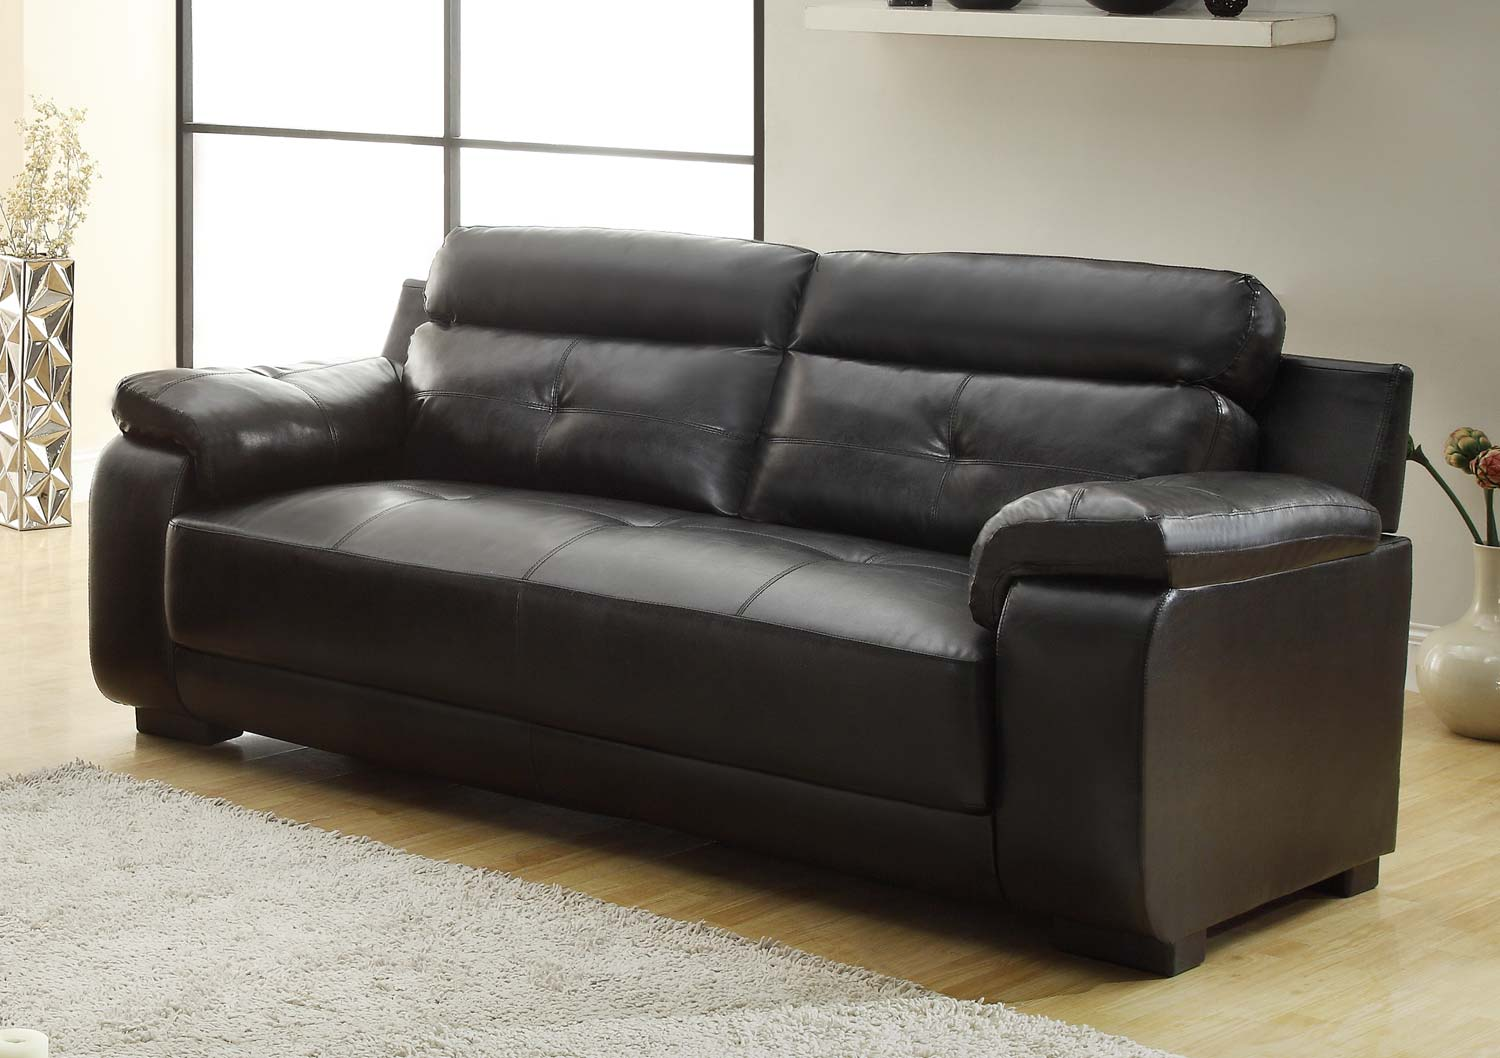 Homelegance Zane Sofa - Black - All Bonded Leather